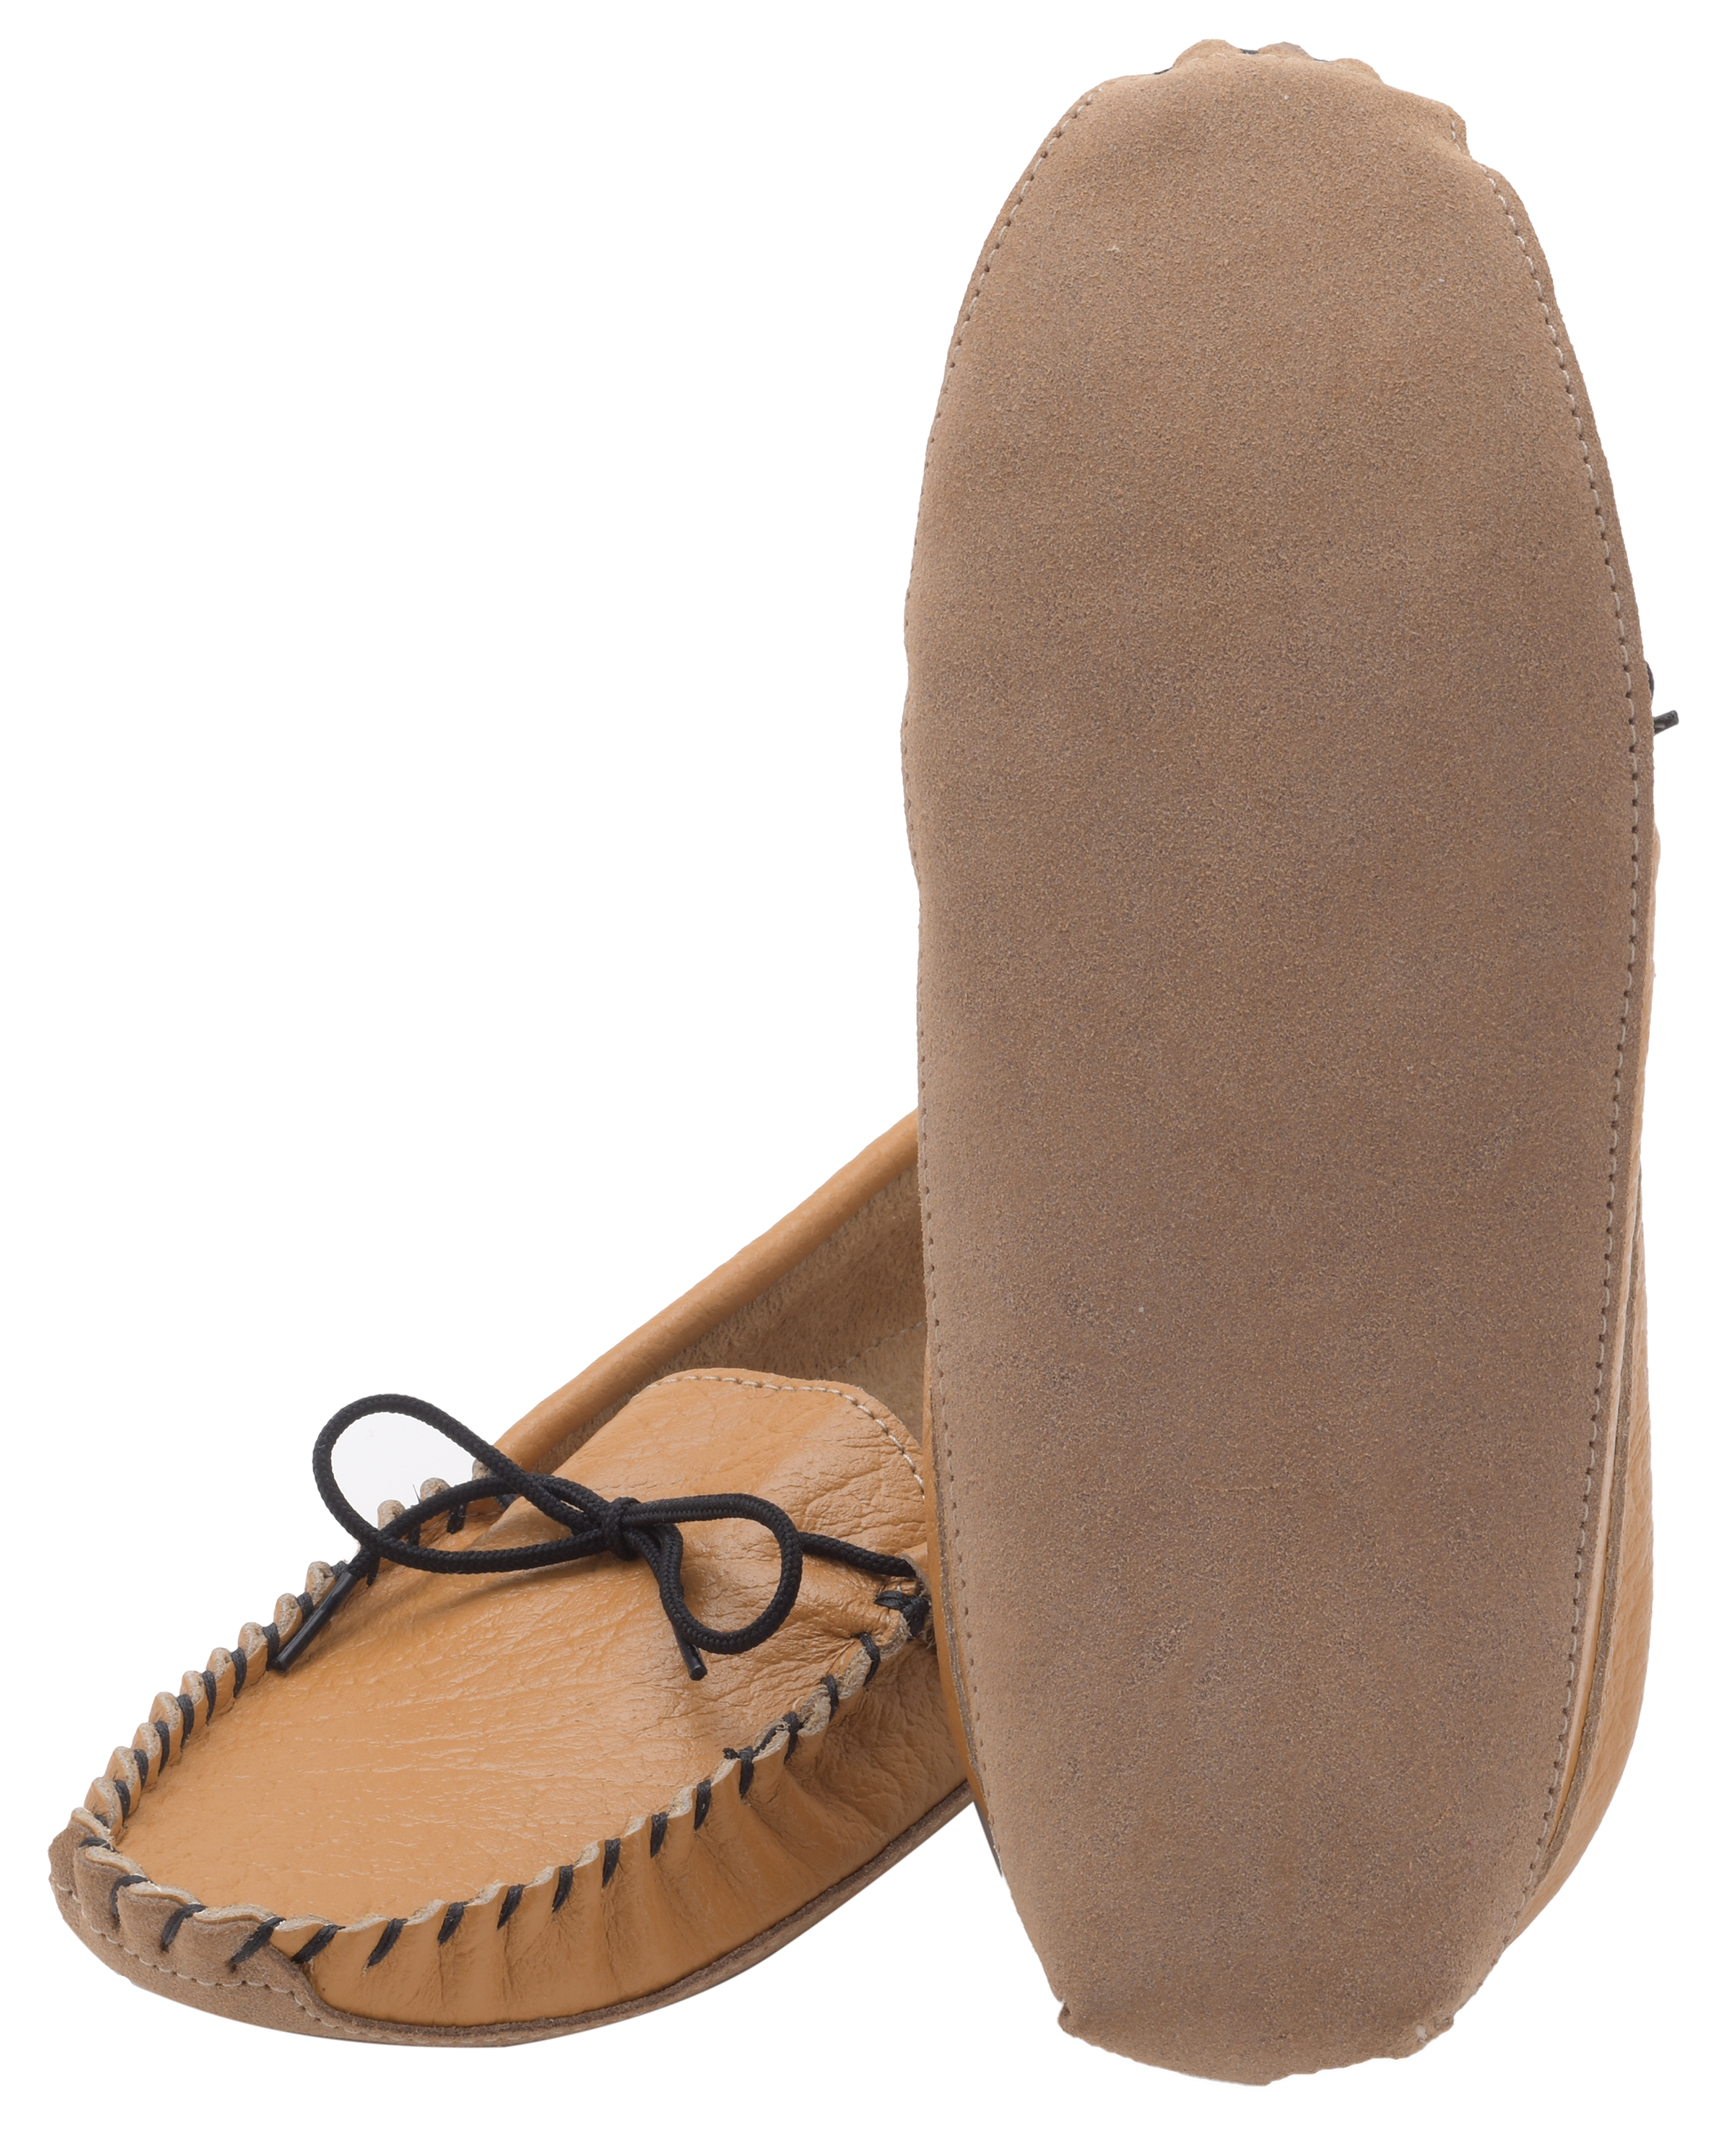 Leather-Earthing-Grounding-Moccasin-Slippers-Made-in-the-UK-Mens-amp-Ladies thumbnail 8